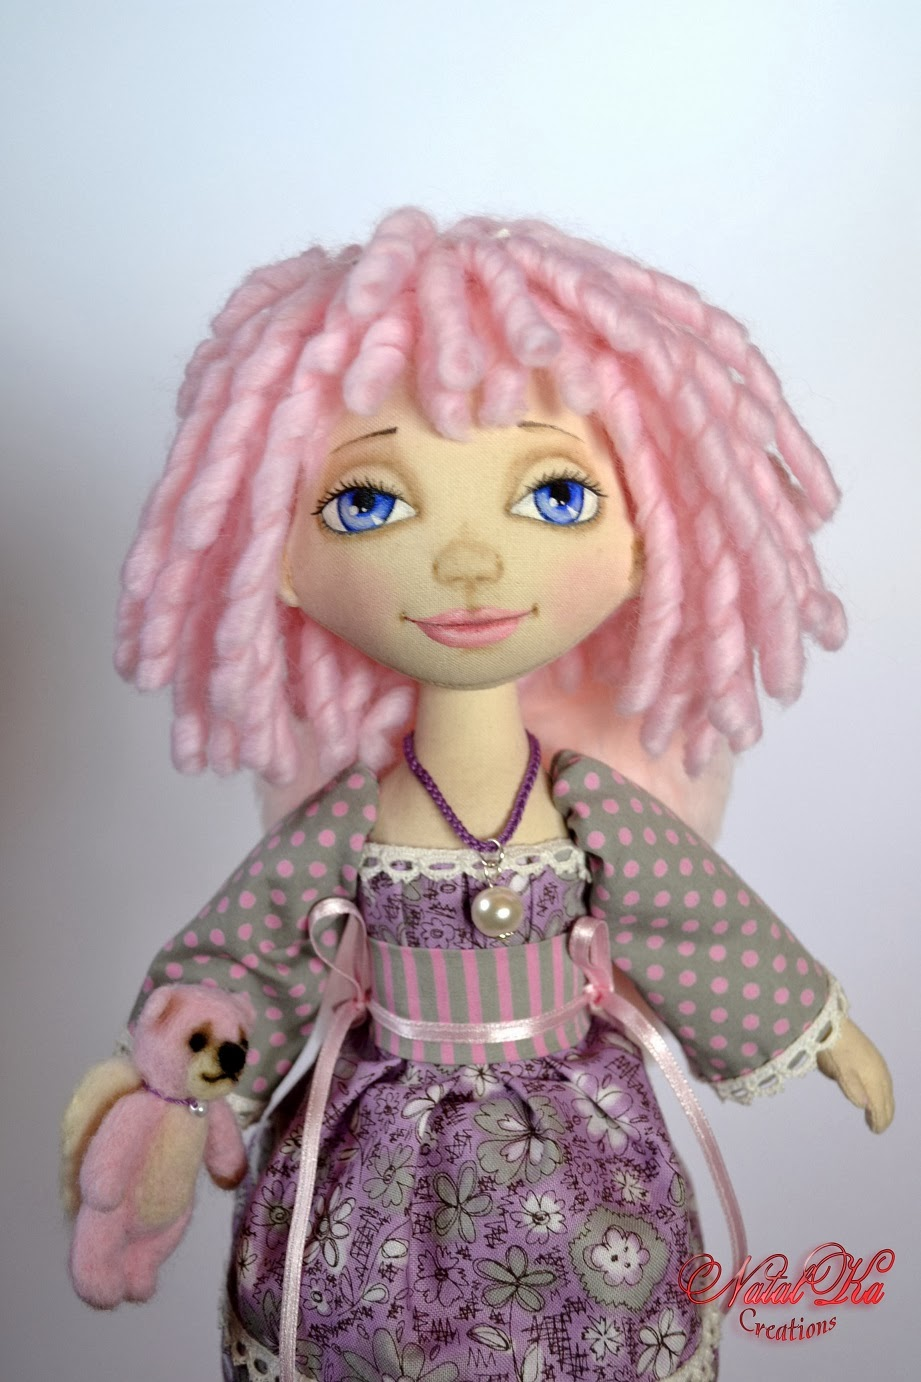 Cloth art doll pink angel handmade by NatalKa Creations. Авторская текстильная кукла